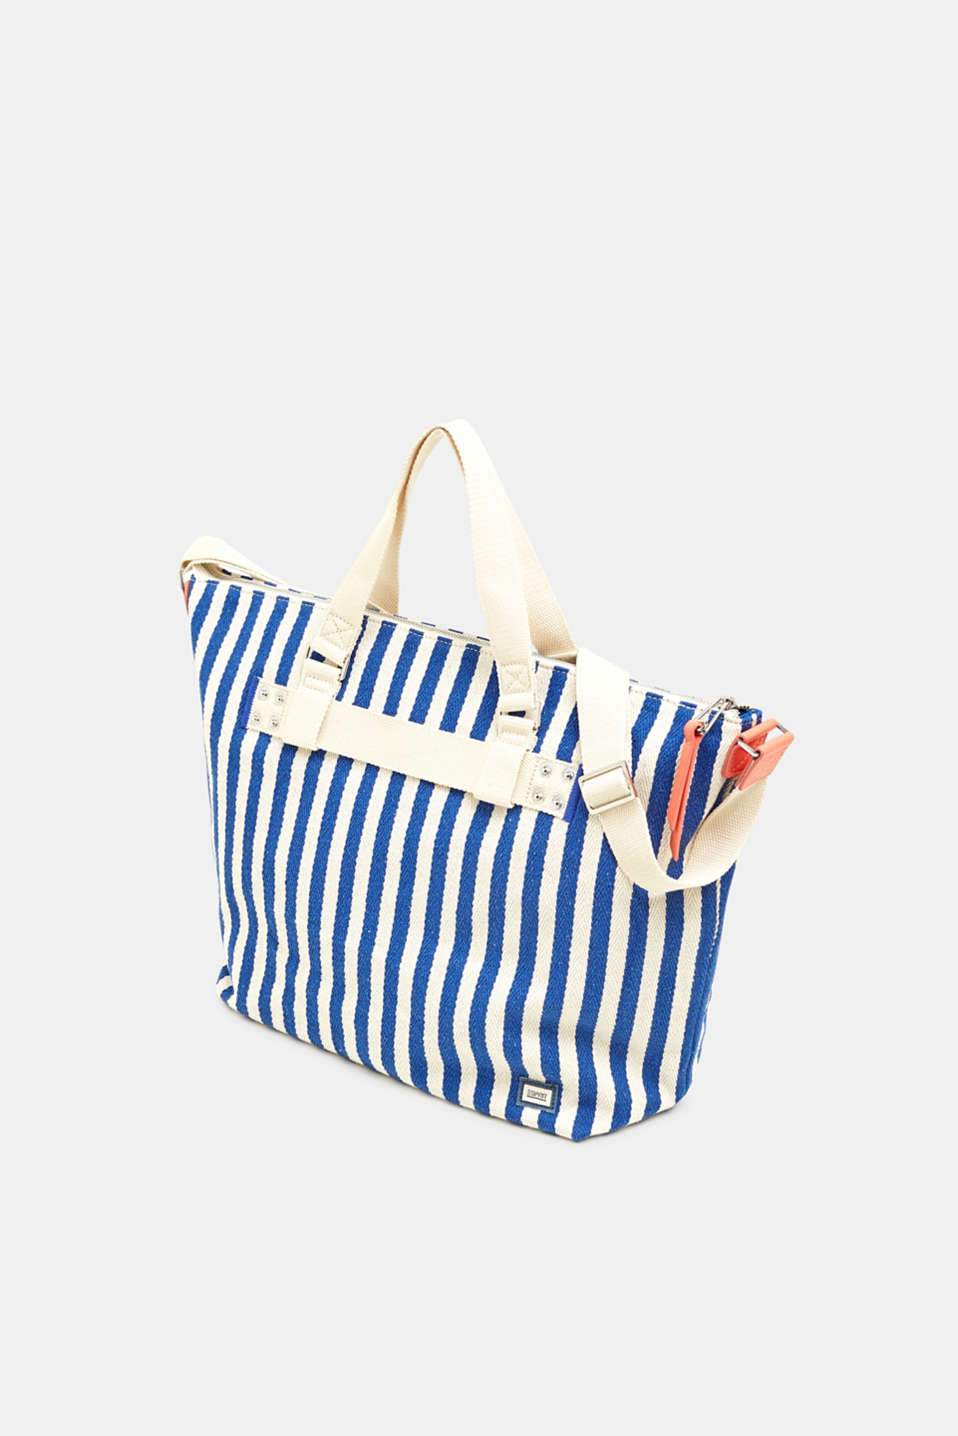 Striped cotton/canvas tote bag, BRIGHT BLUE, detail image number 2